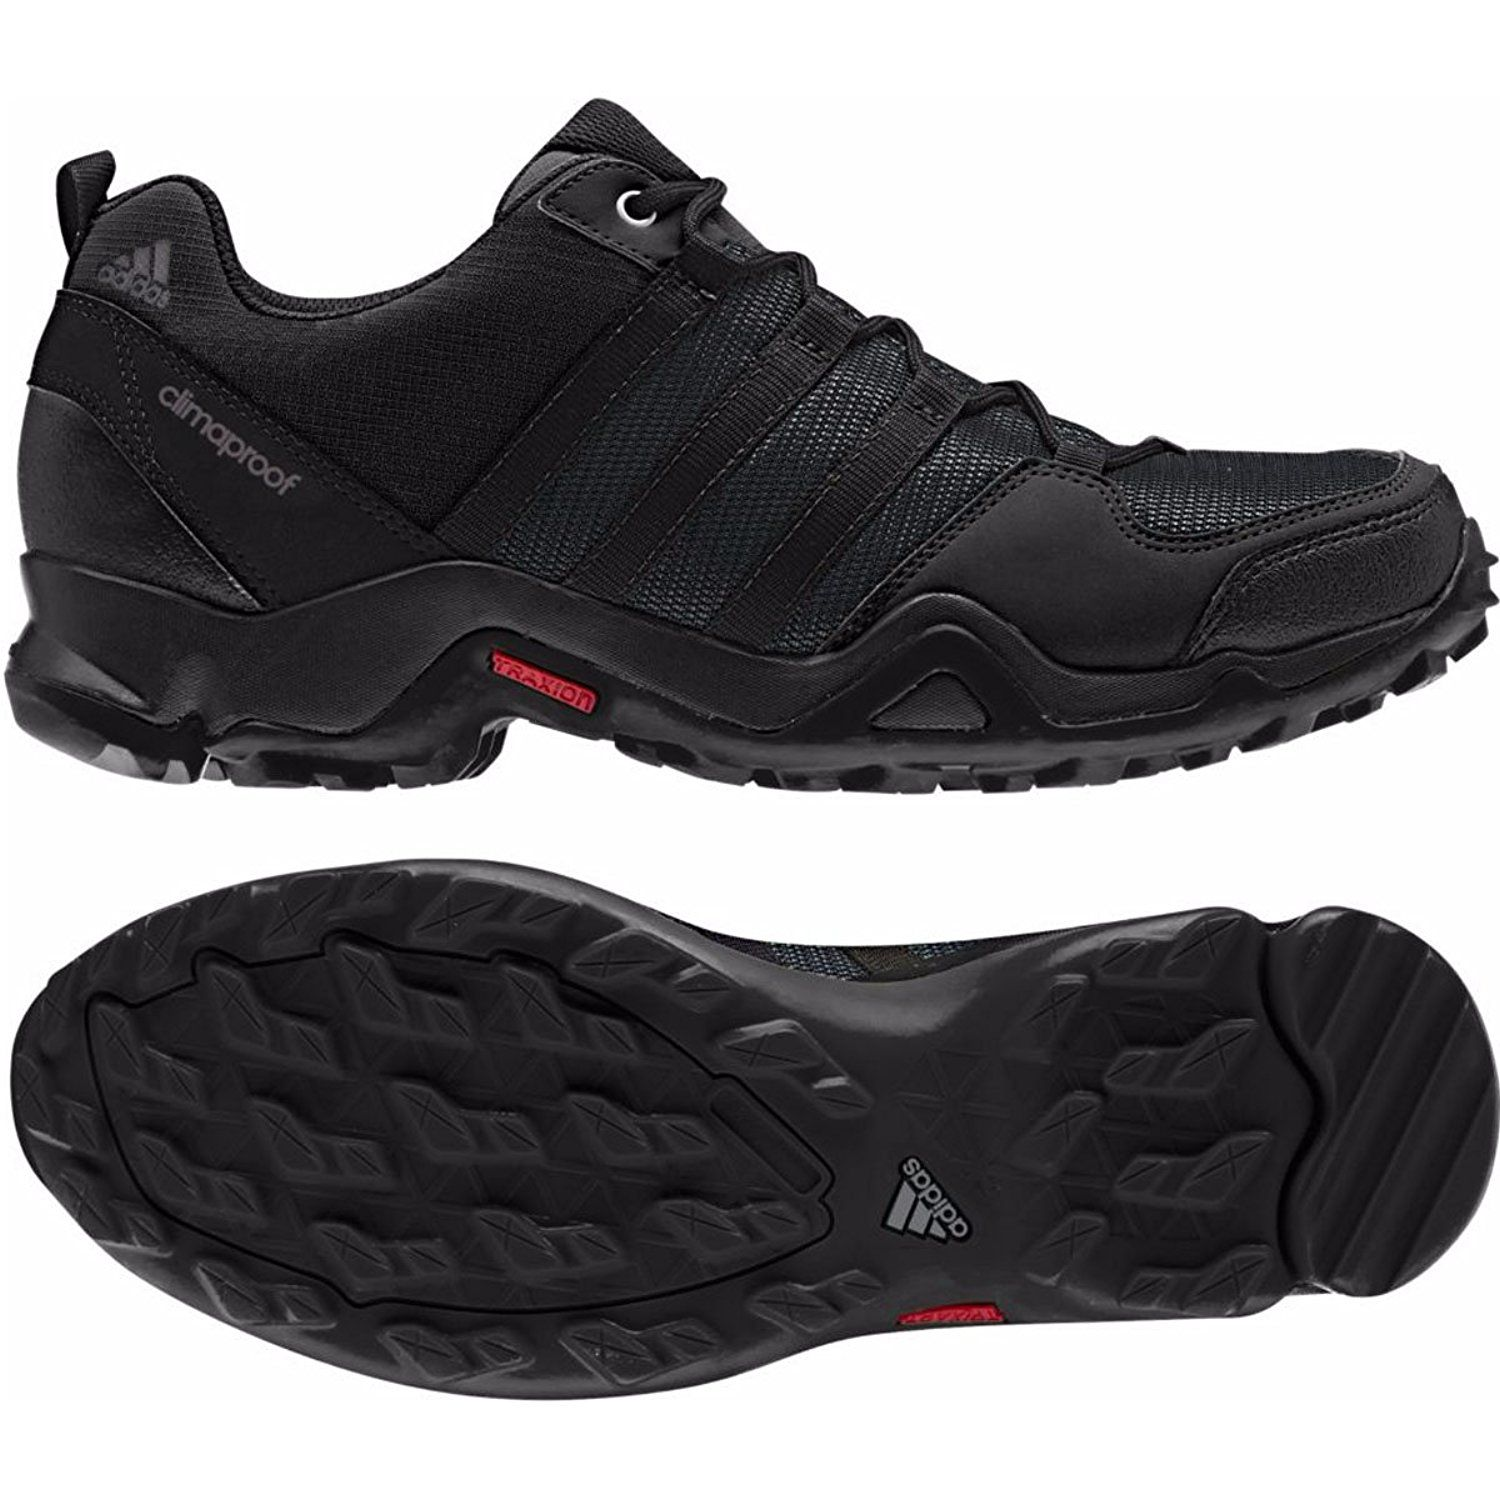 Pin on Outdoor Footwear and Accessories